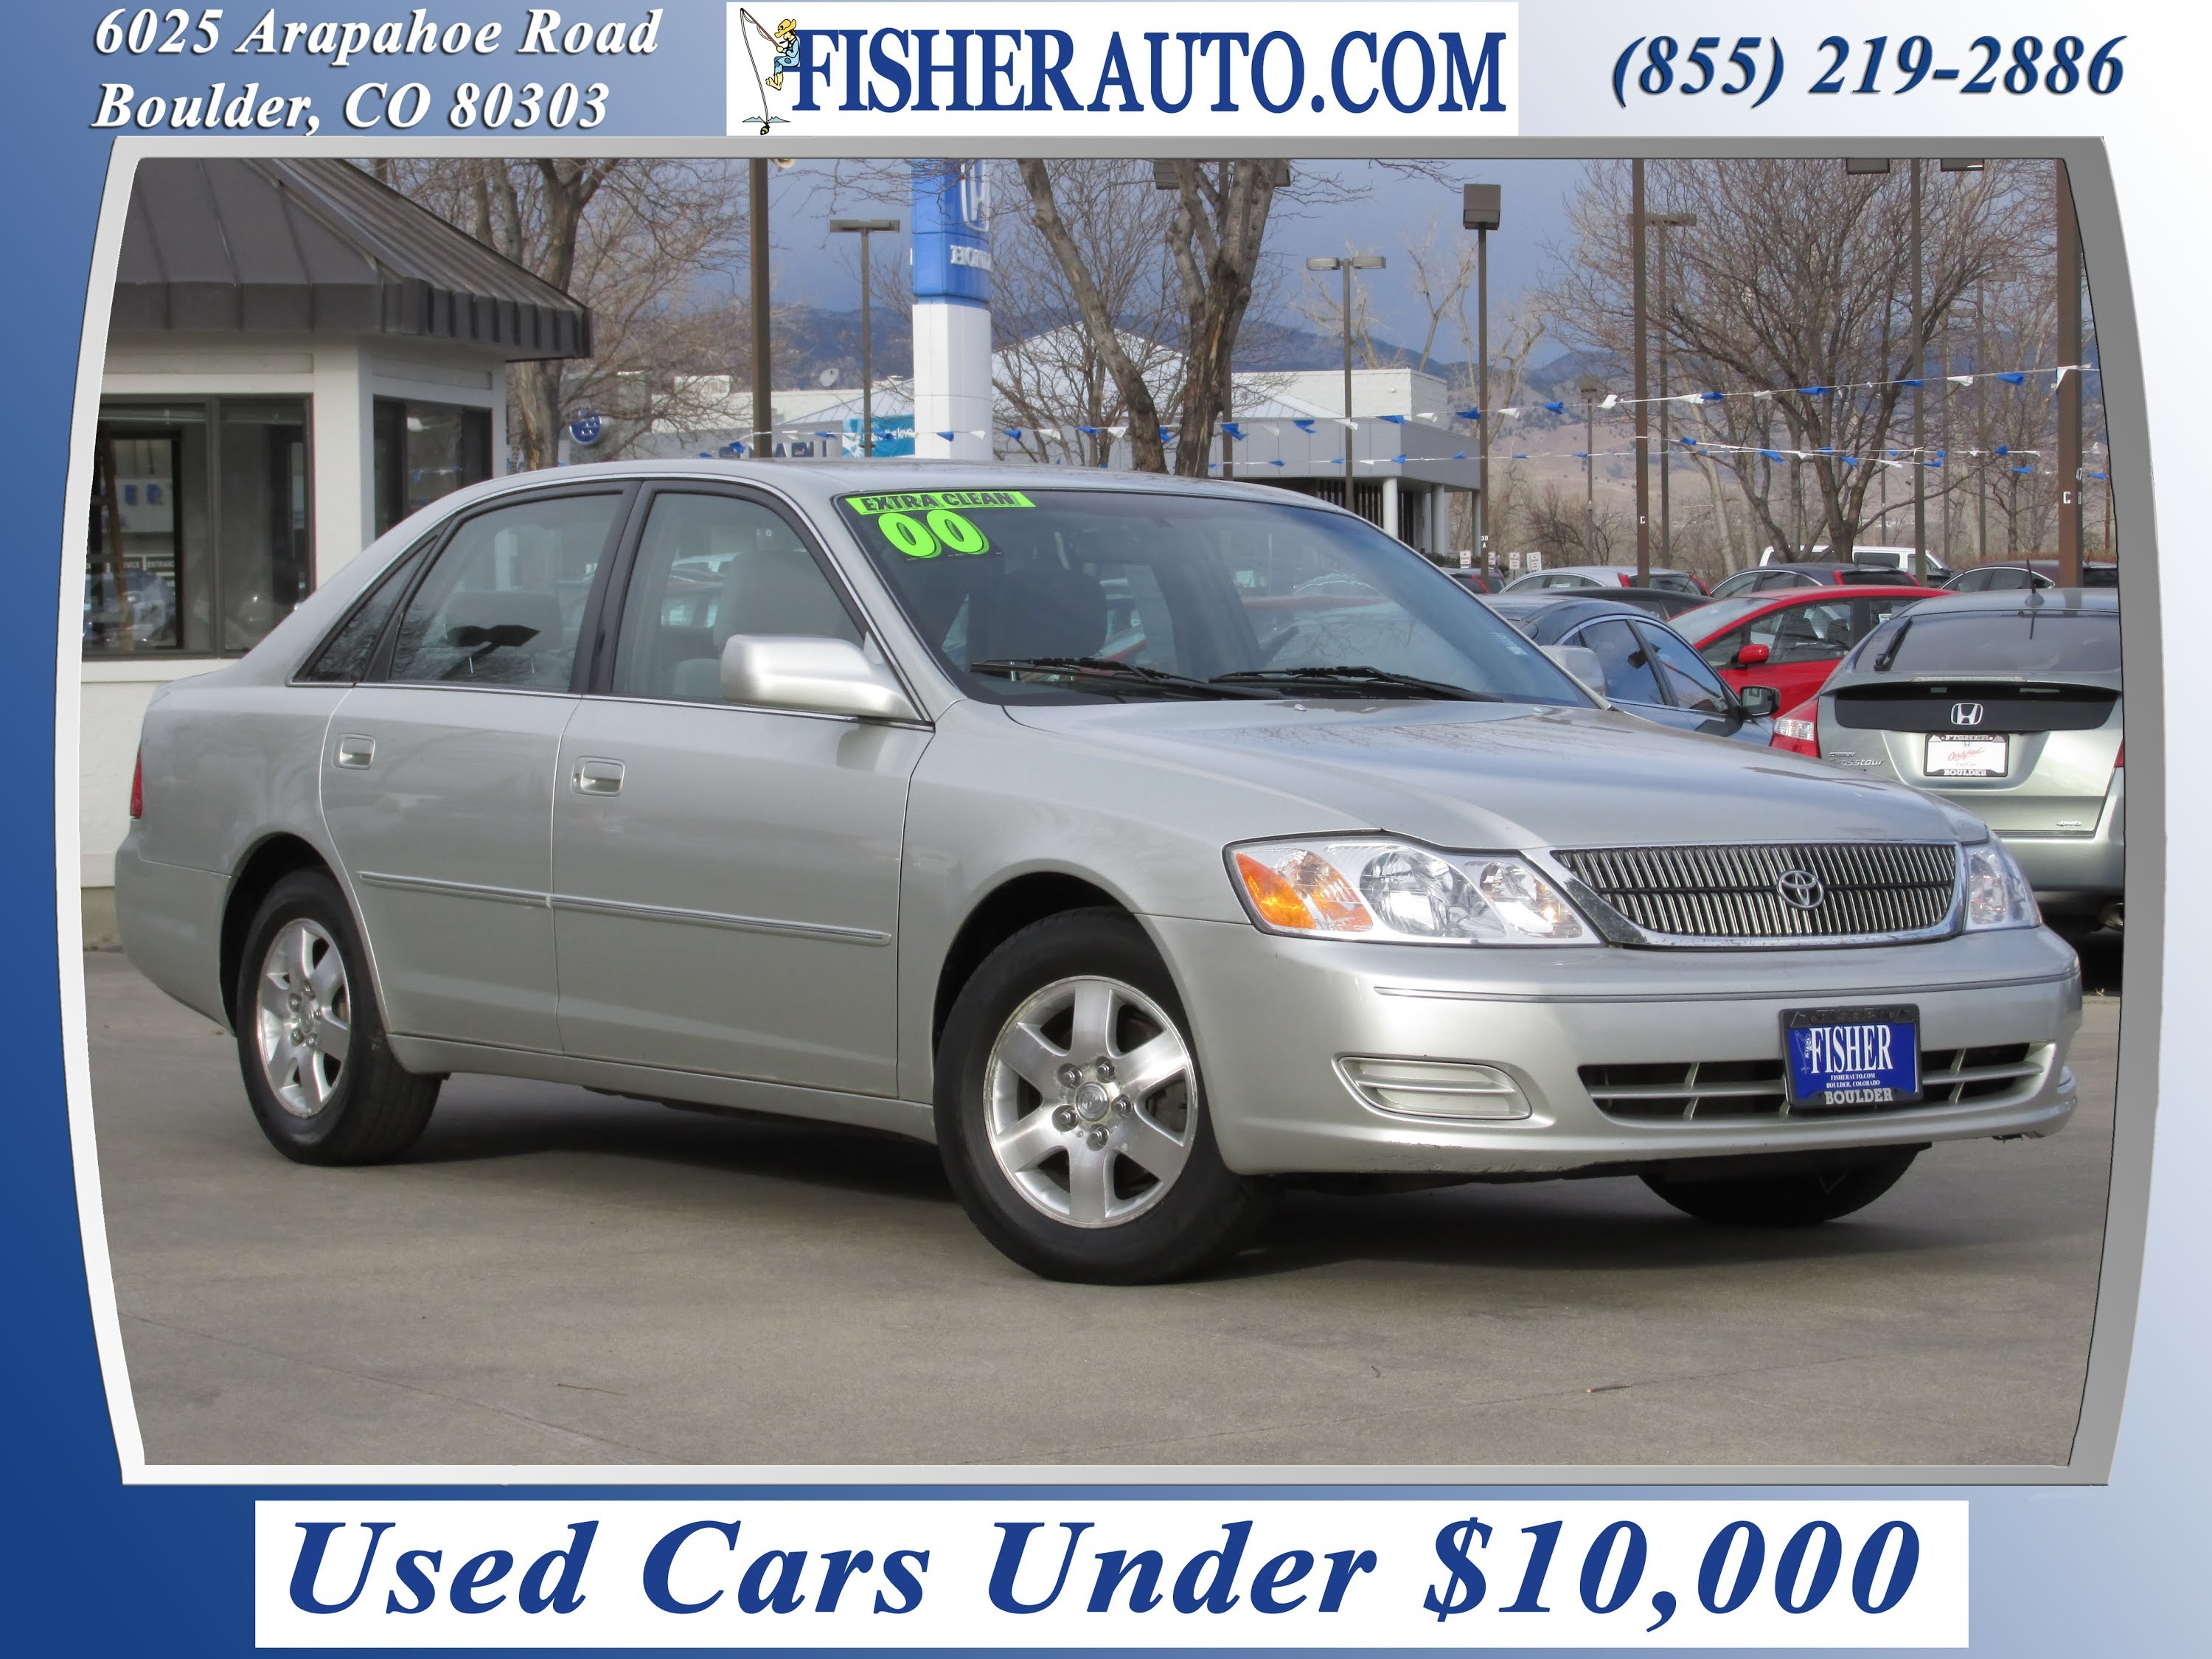 used cars under $10 000 2000 toyota avalon xl silver $7 900 longmont denver fisher auto p6824a